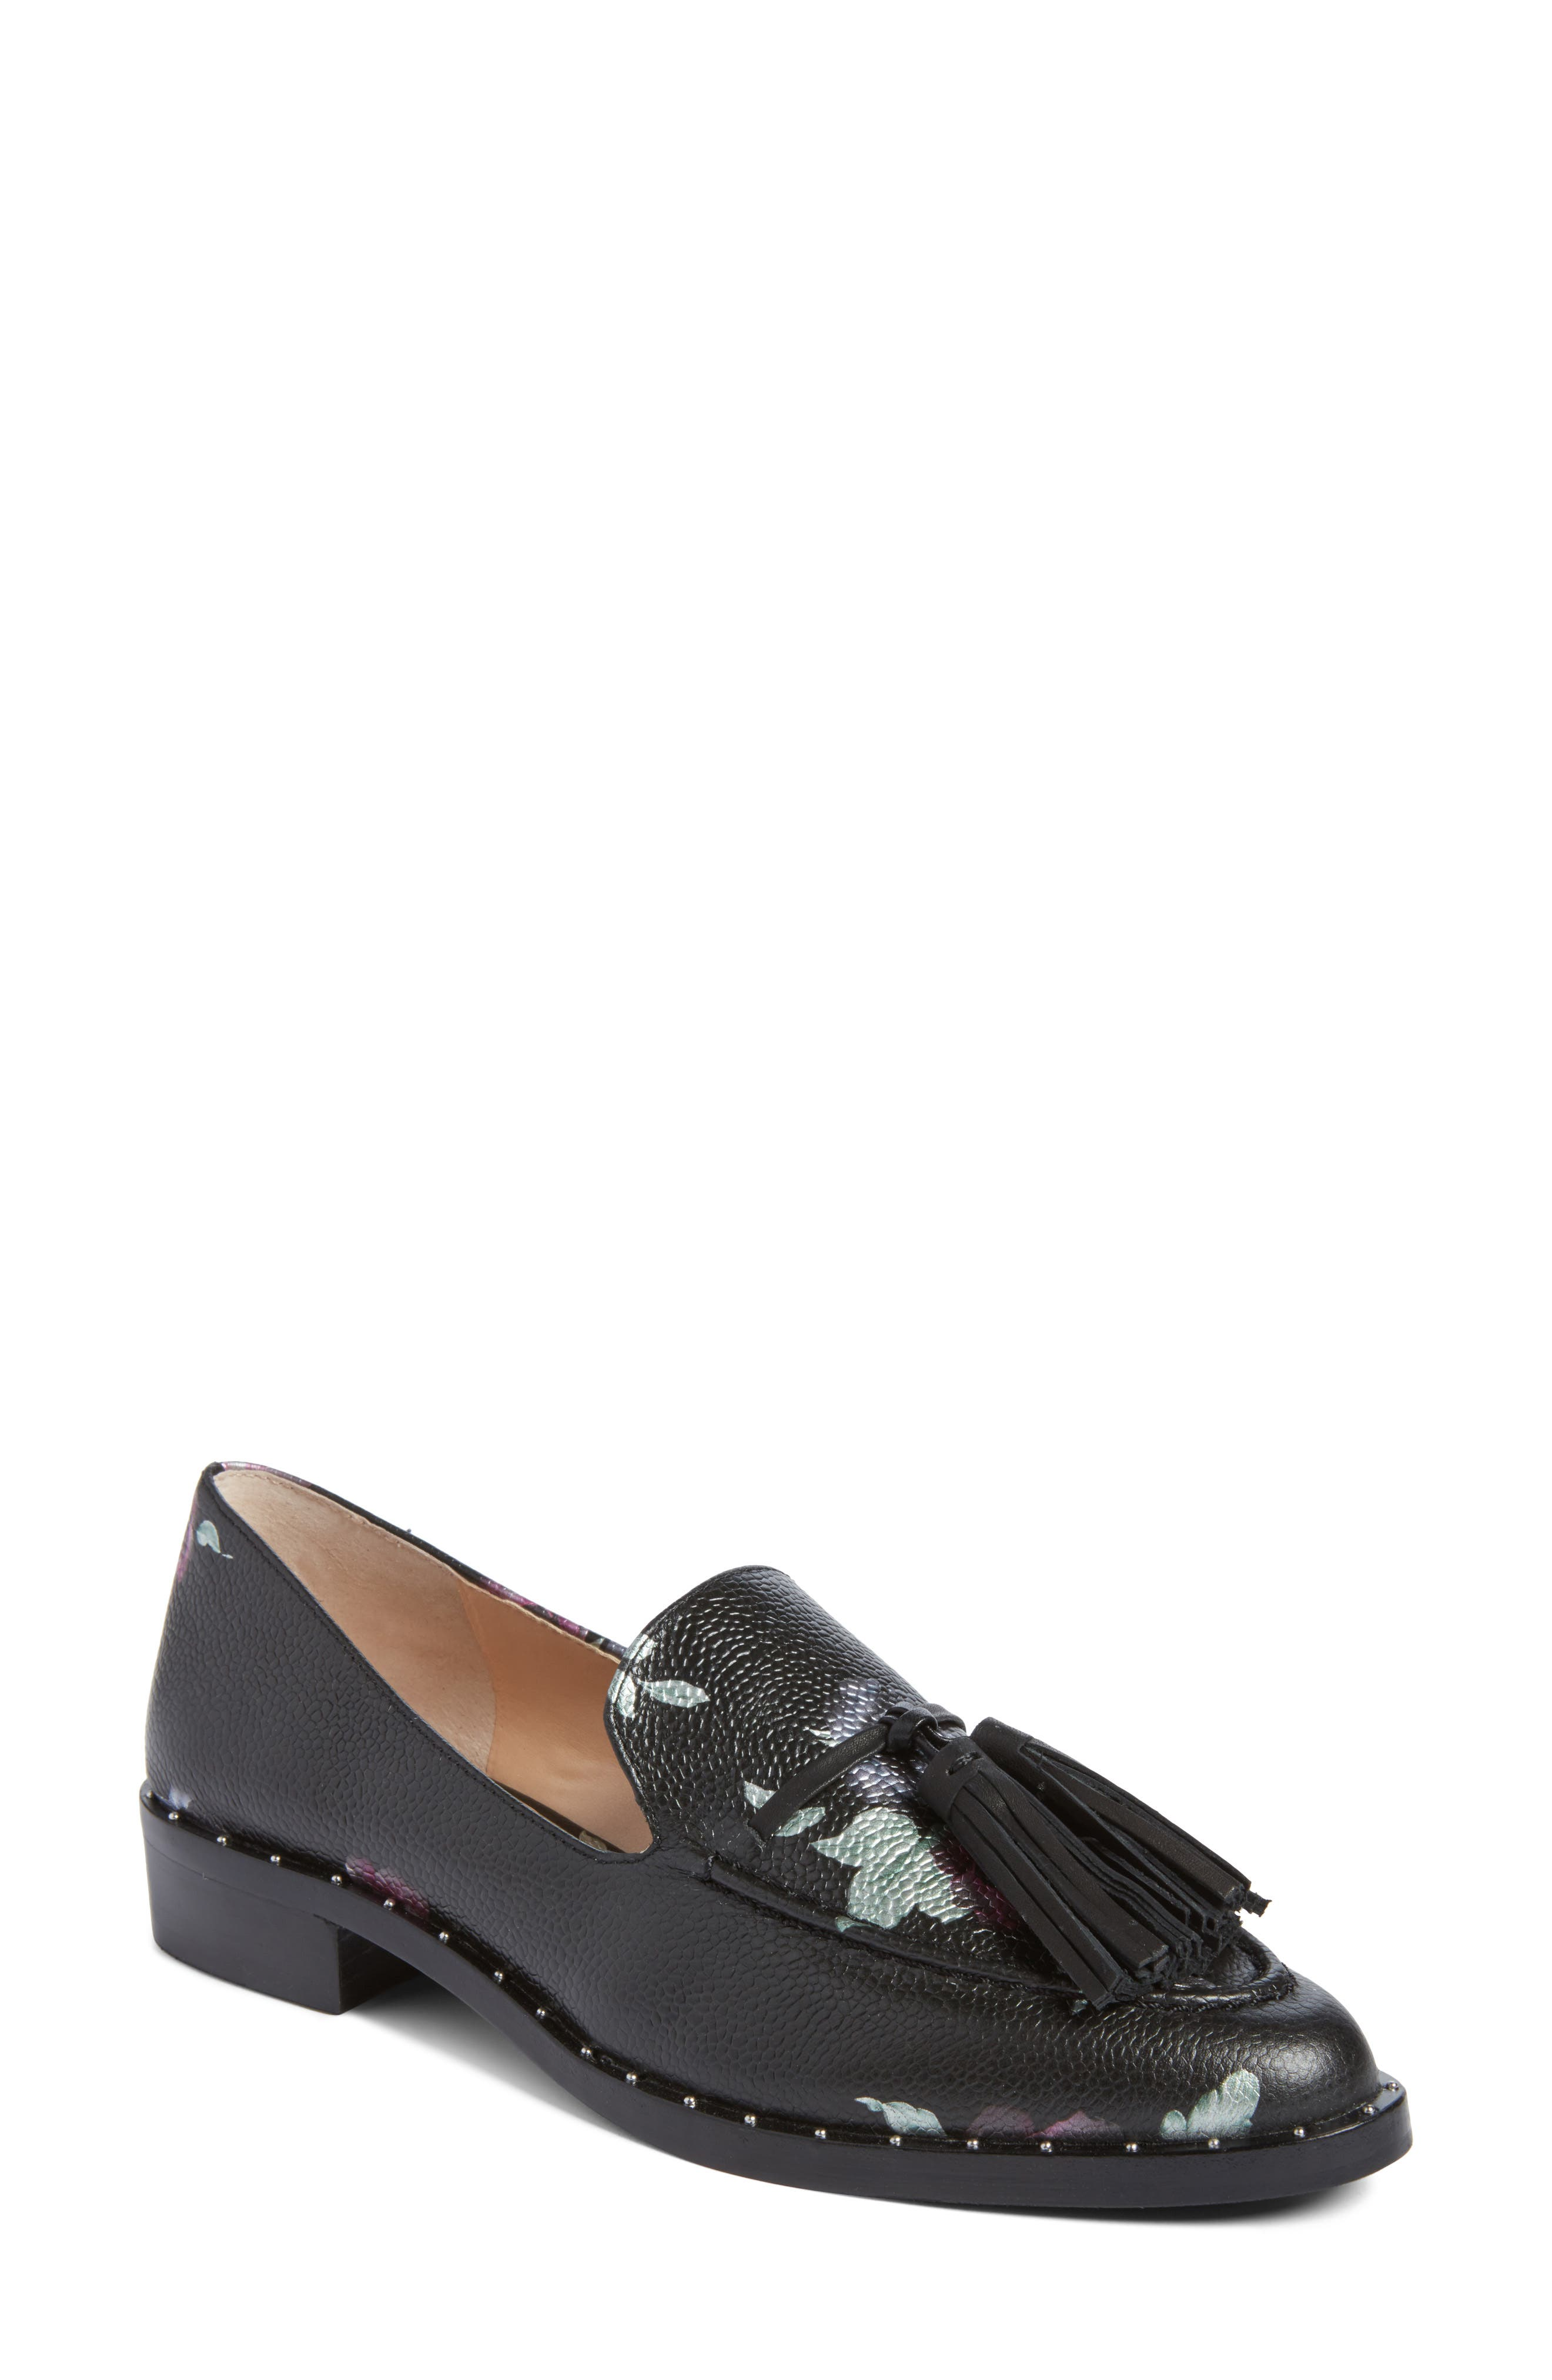 Geralin Tassel Loafer,                             Main thumbnail 1, color,                             Black Floral Print Leather